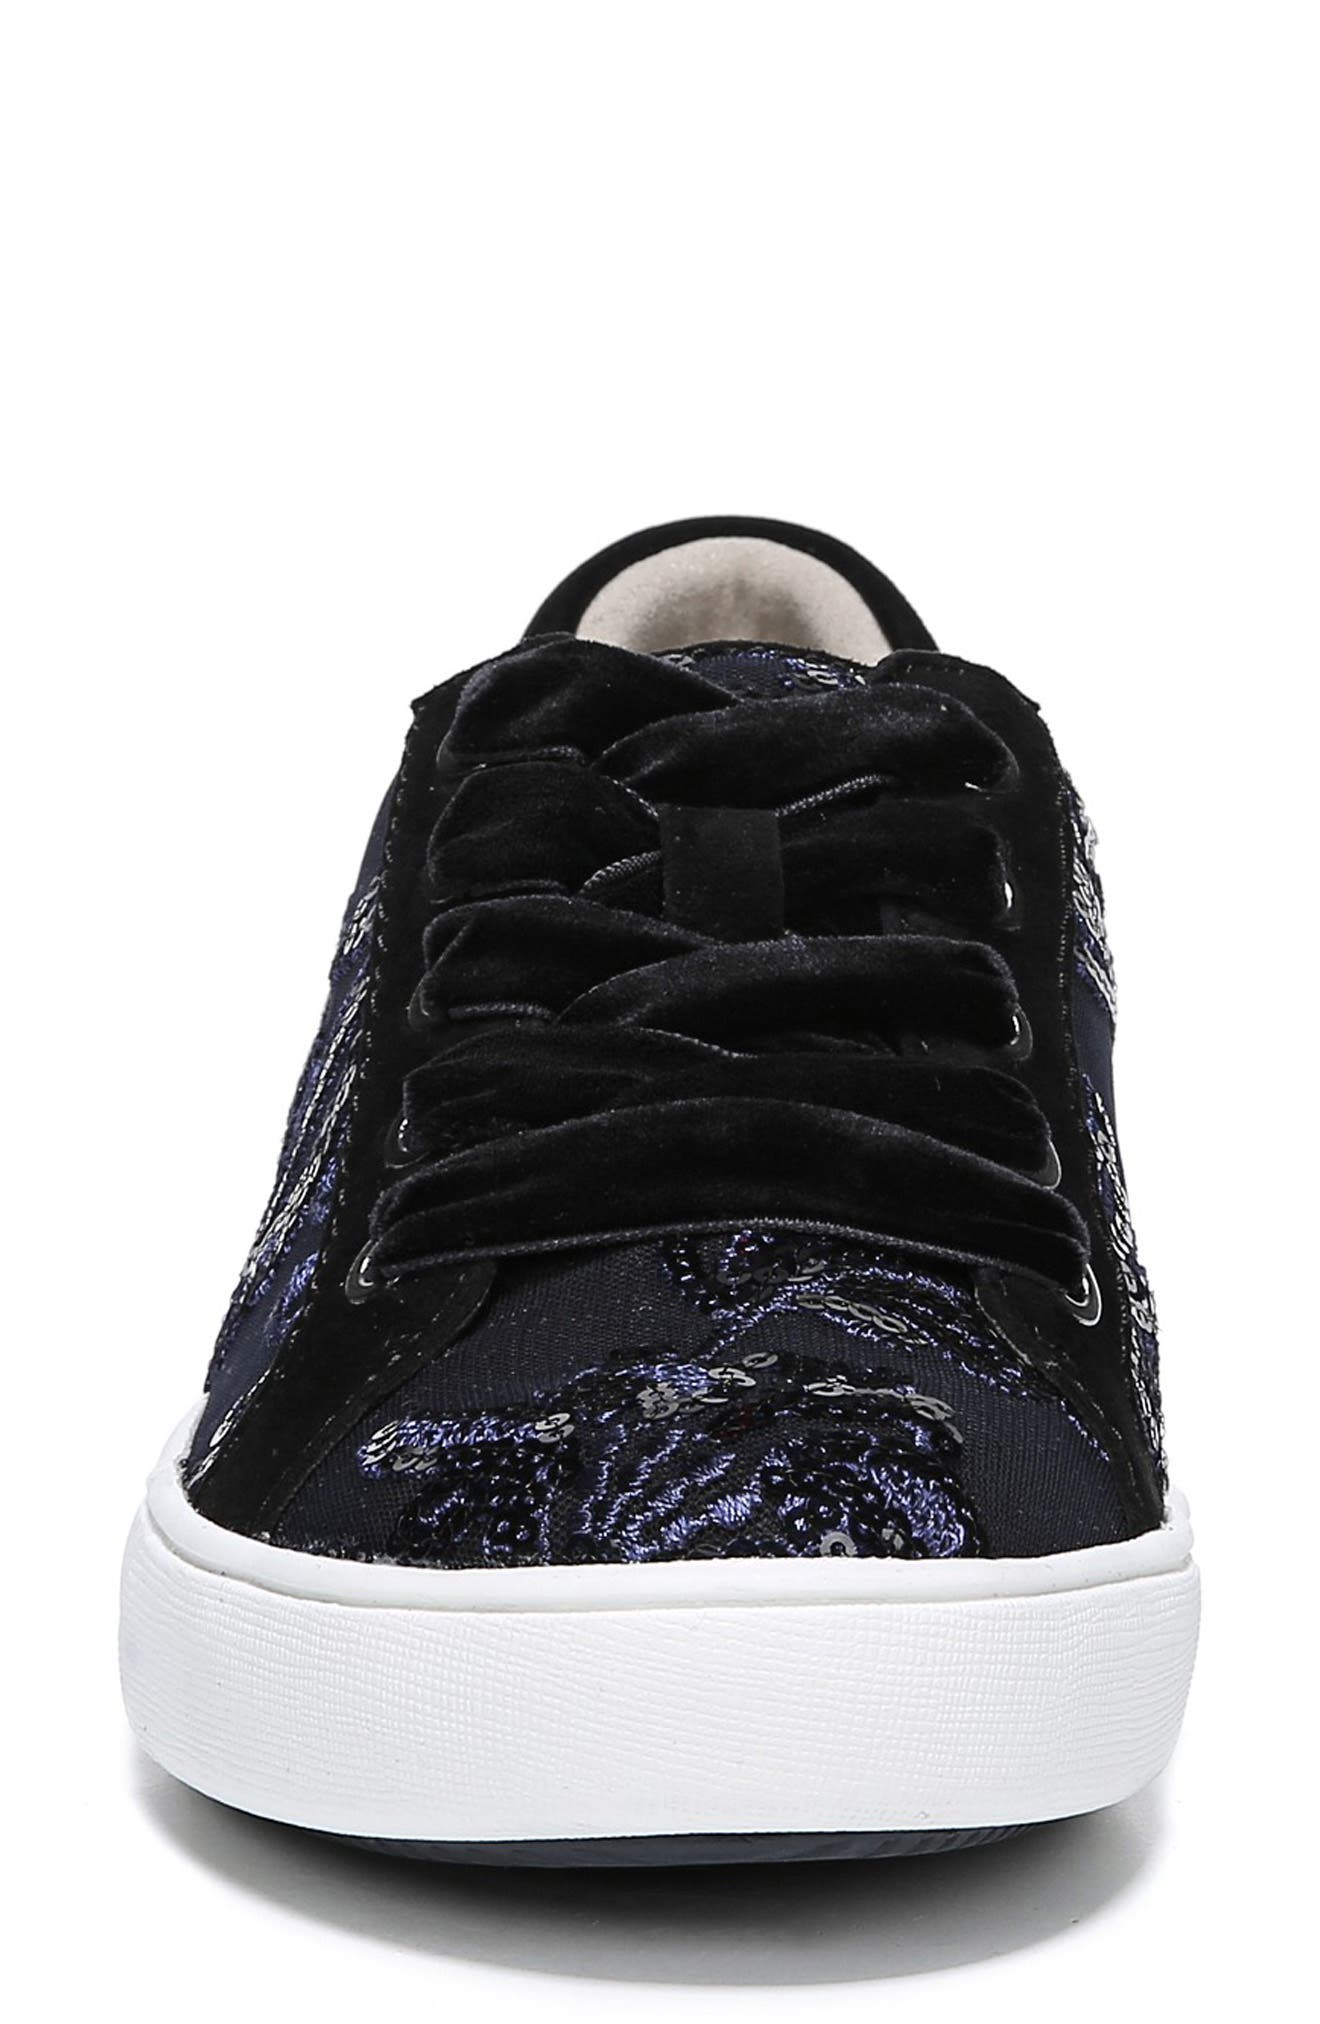 NATURALIZER, Morrison Sneaker, Alternate thumbnail 4, color, NAVY EMBROIDERED LACE